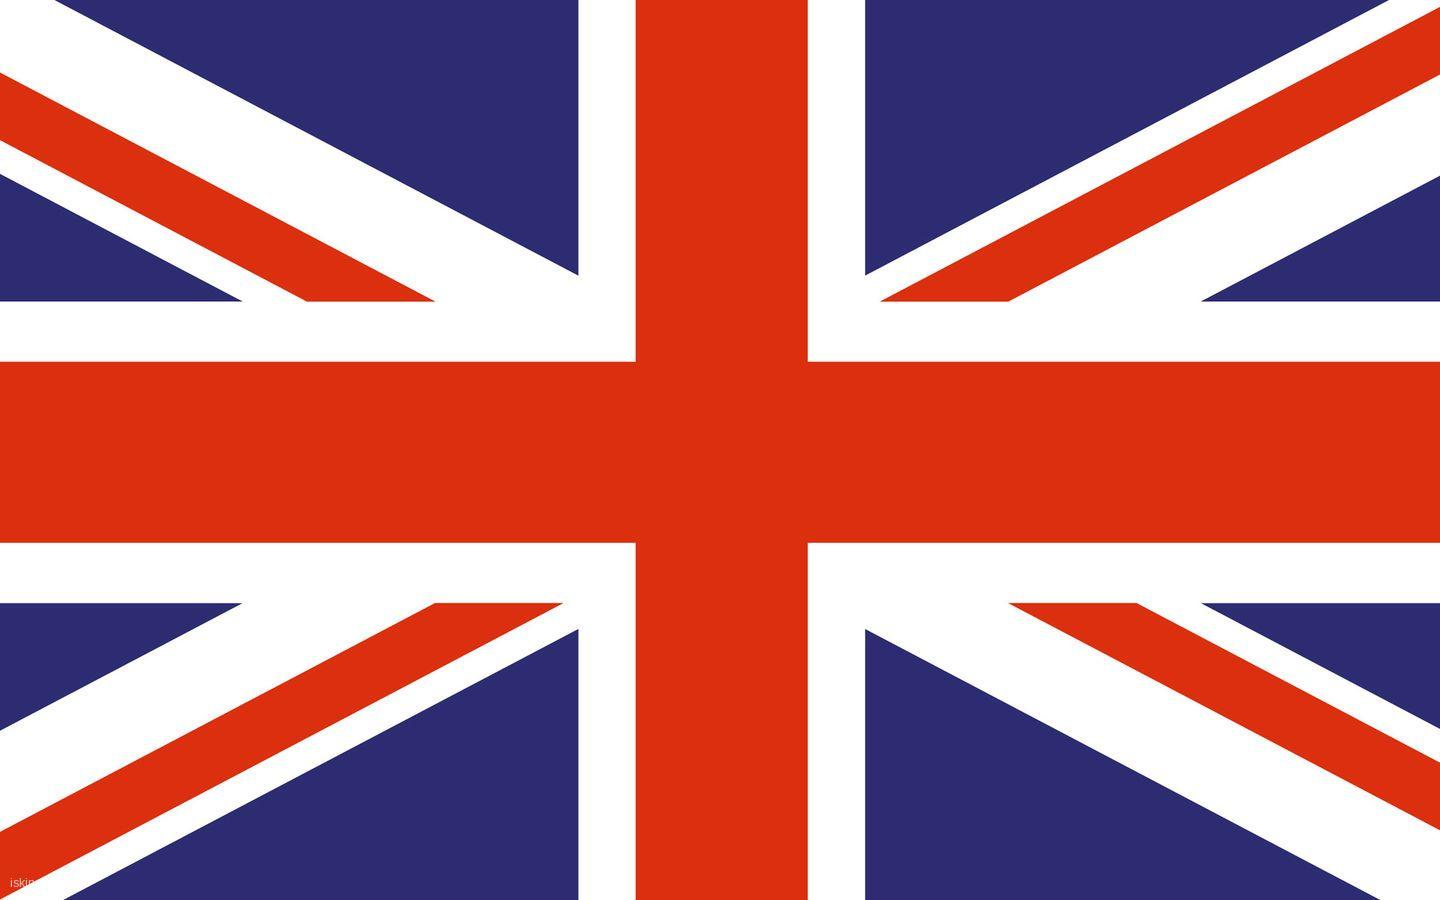 England Flag Wallpapers - Wallpaper Cave